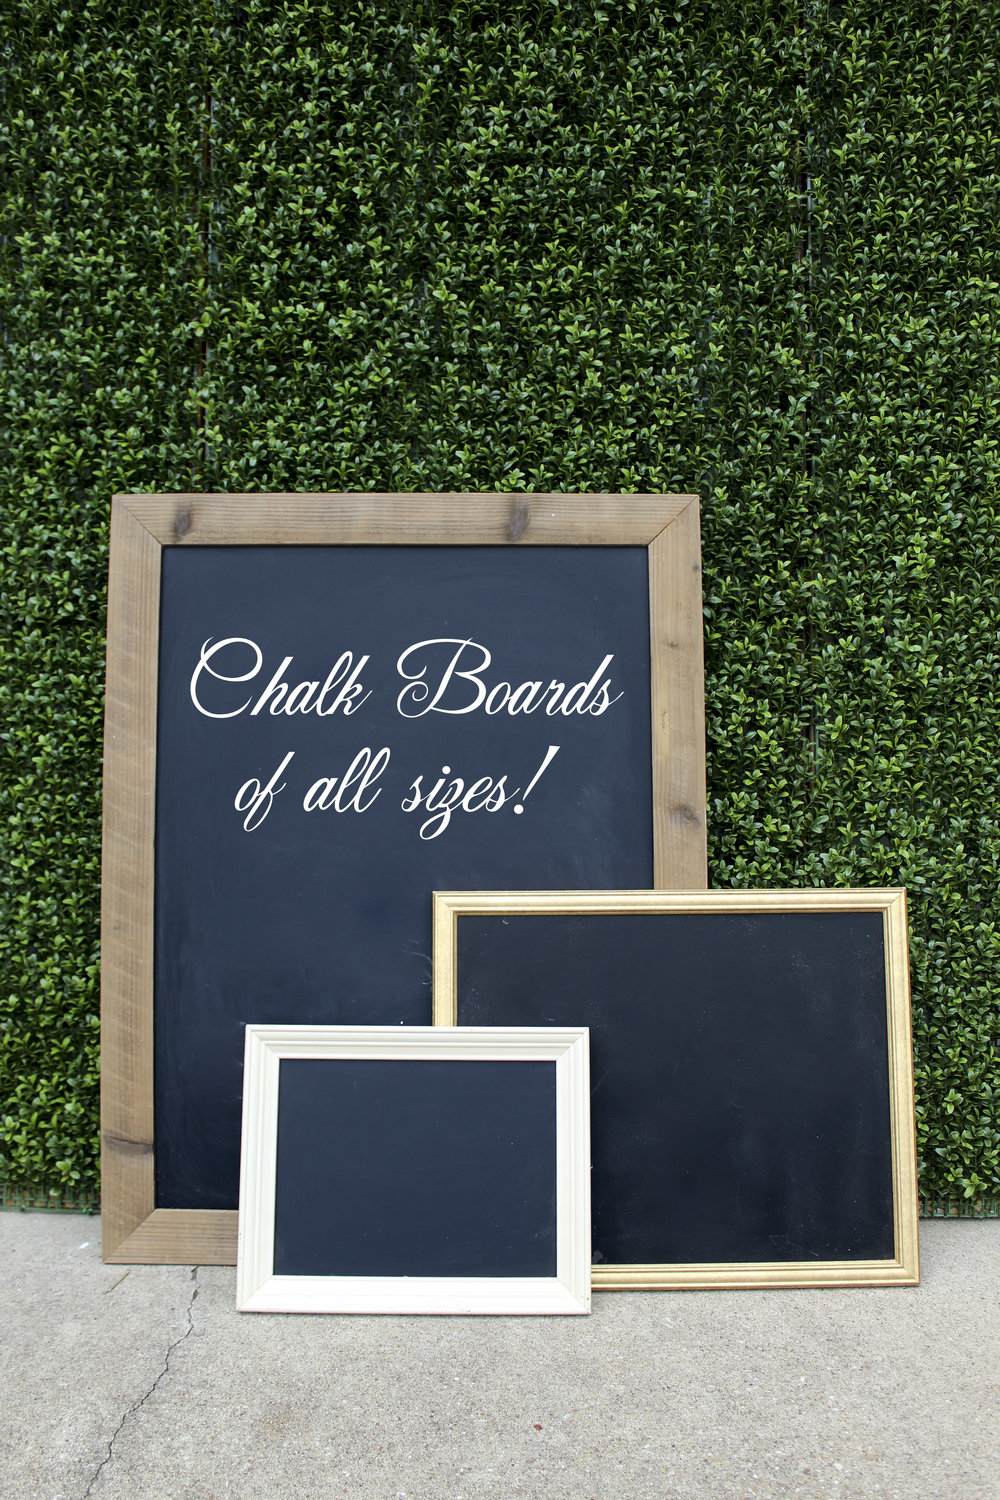 Various Chalkboard Signs - Prices starting at $5.00